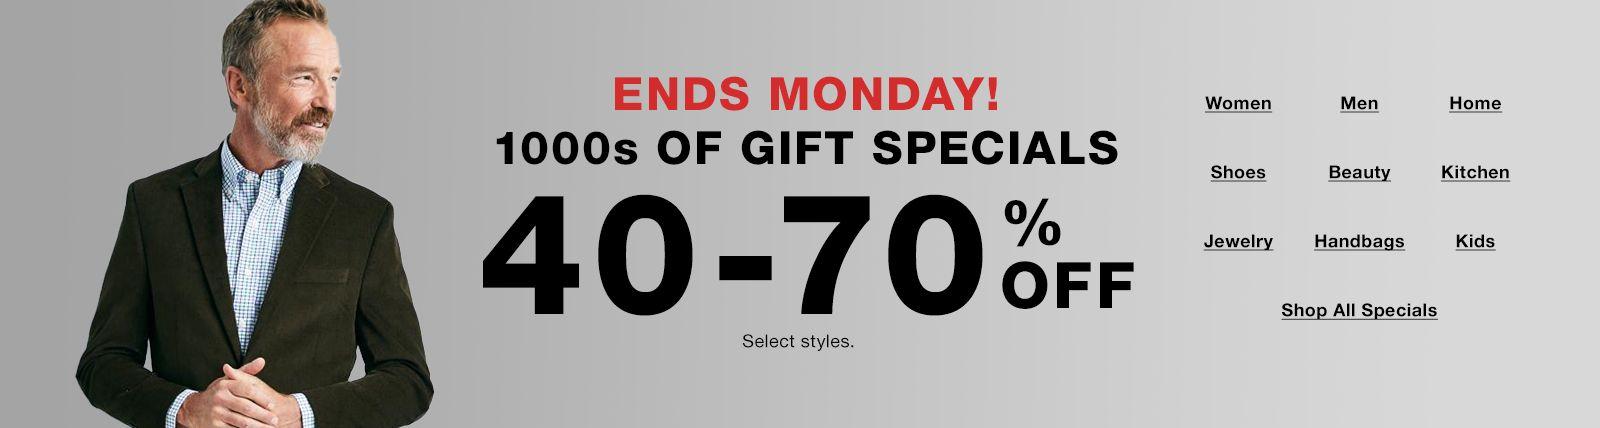 Ends Monday, 1000s Of Gifts Specials, 40-70 percent off, select styles, Women, Men, Home, Shoes, Beauty, Kitchen, Jewelry, Handbags, Kids, Shop All Specials